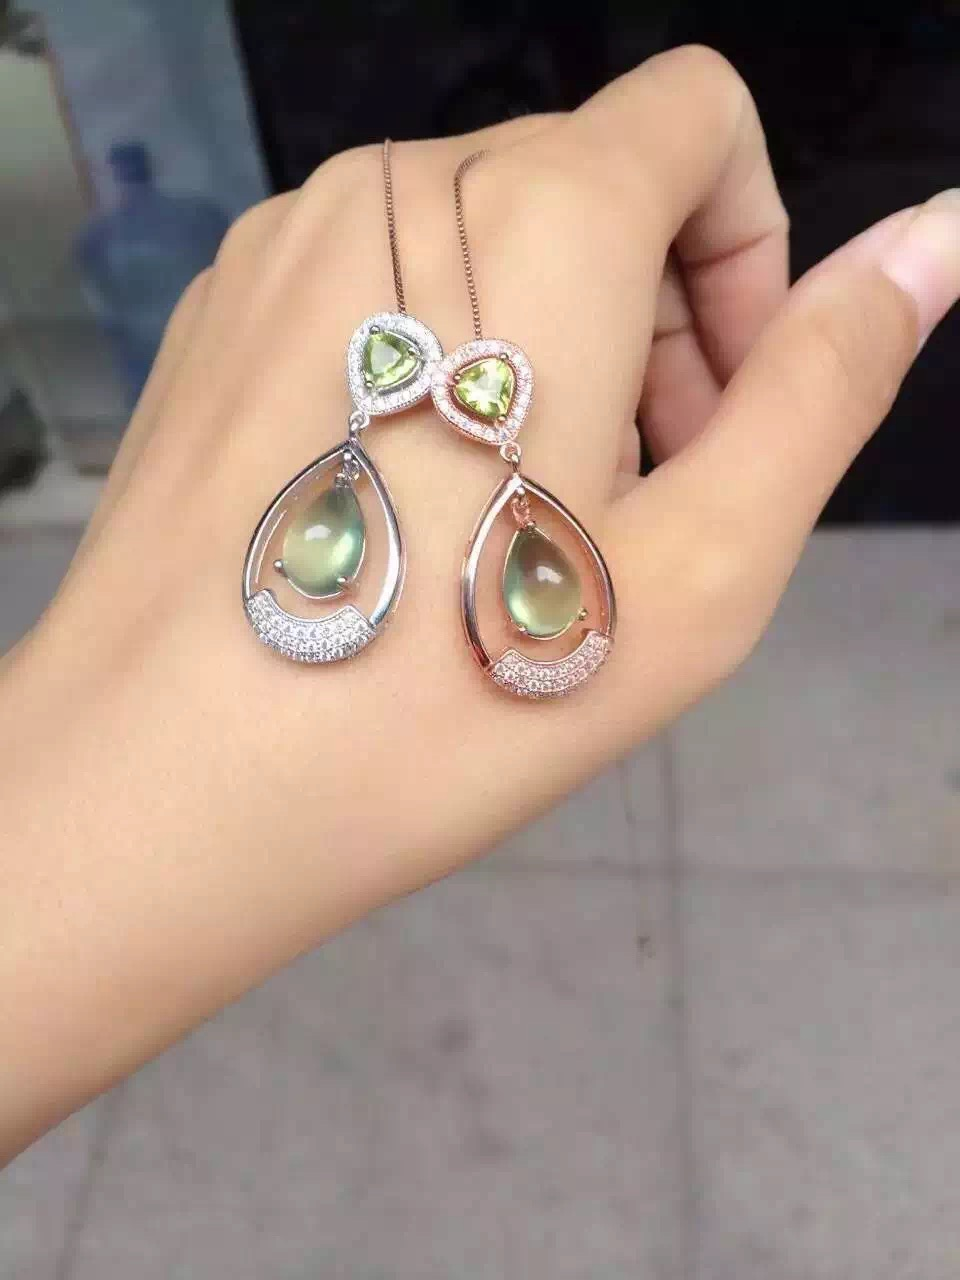 natural green prehnite pendant S925 silver Natural red garnet Pendant Necklace trendy big water drop women party fine jewelrynatural green prehnite pendant S925 silver Natural red garnet Pendant Necklace trendy big water drop women party fine jewelry